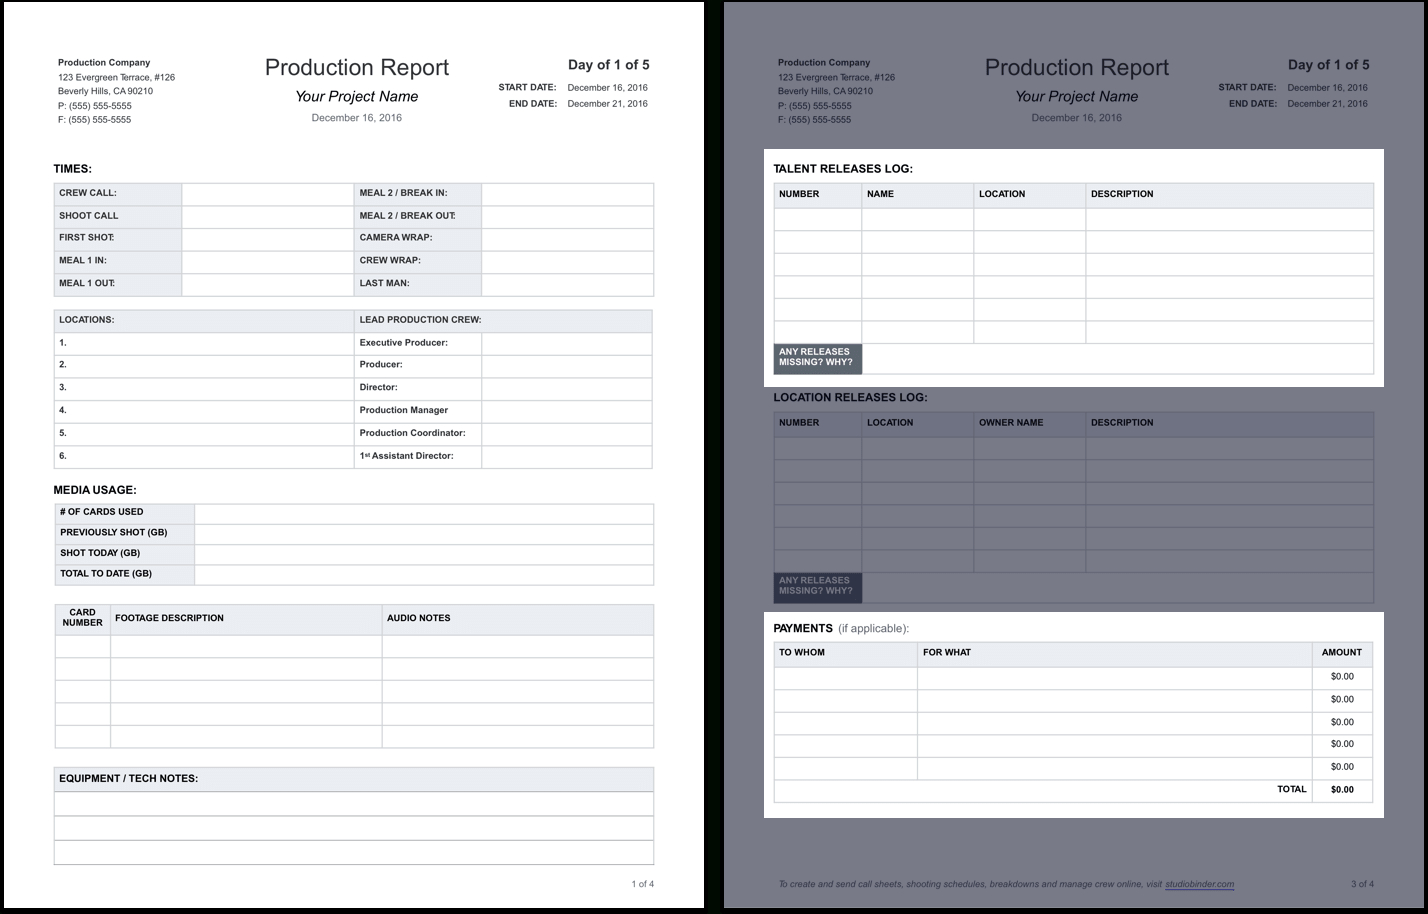 Pipe Tally Spreadsheet For The Daily Production Report, Explained With Free Template